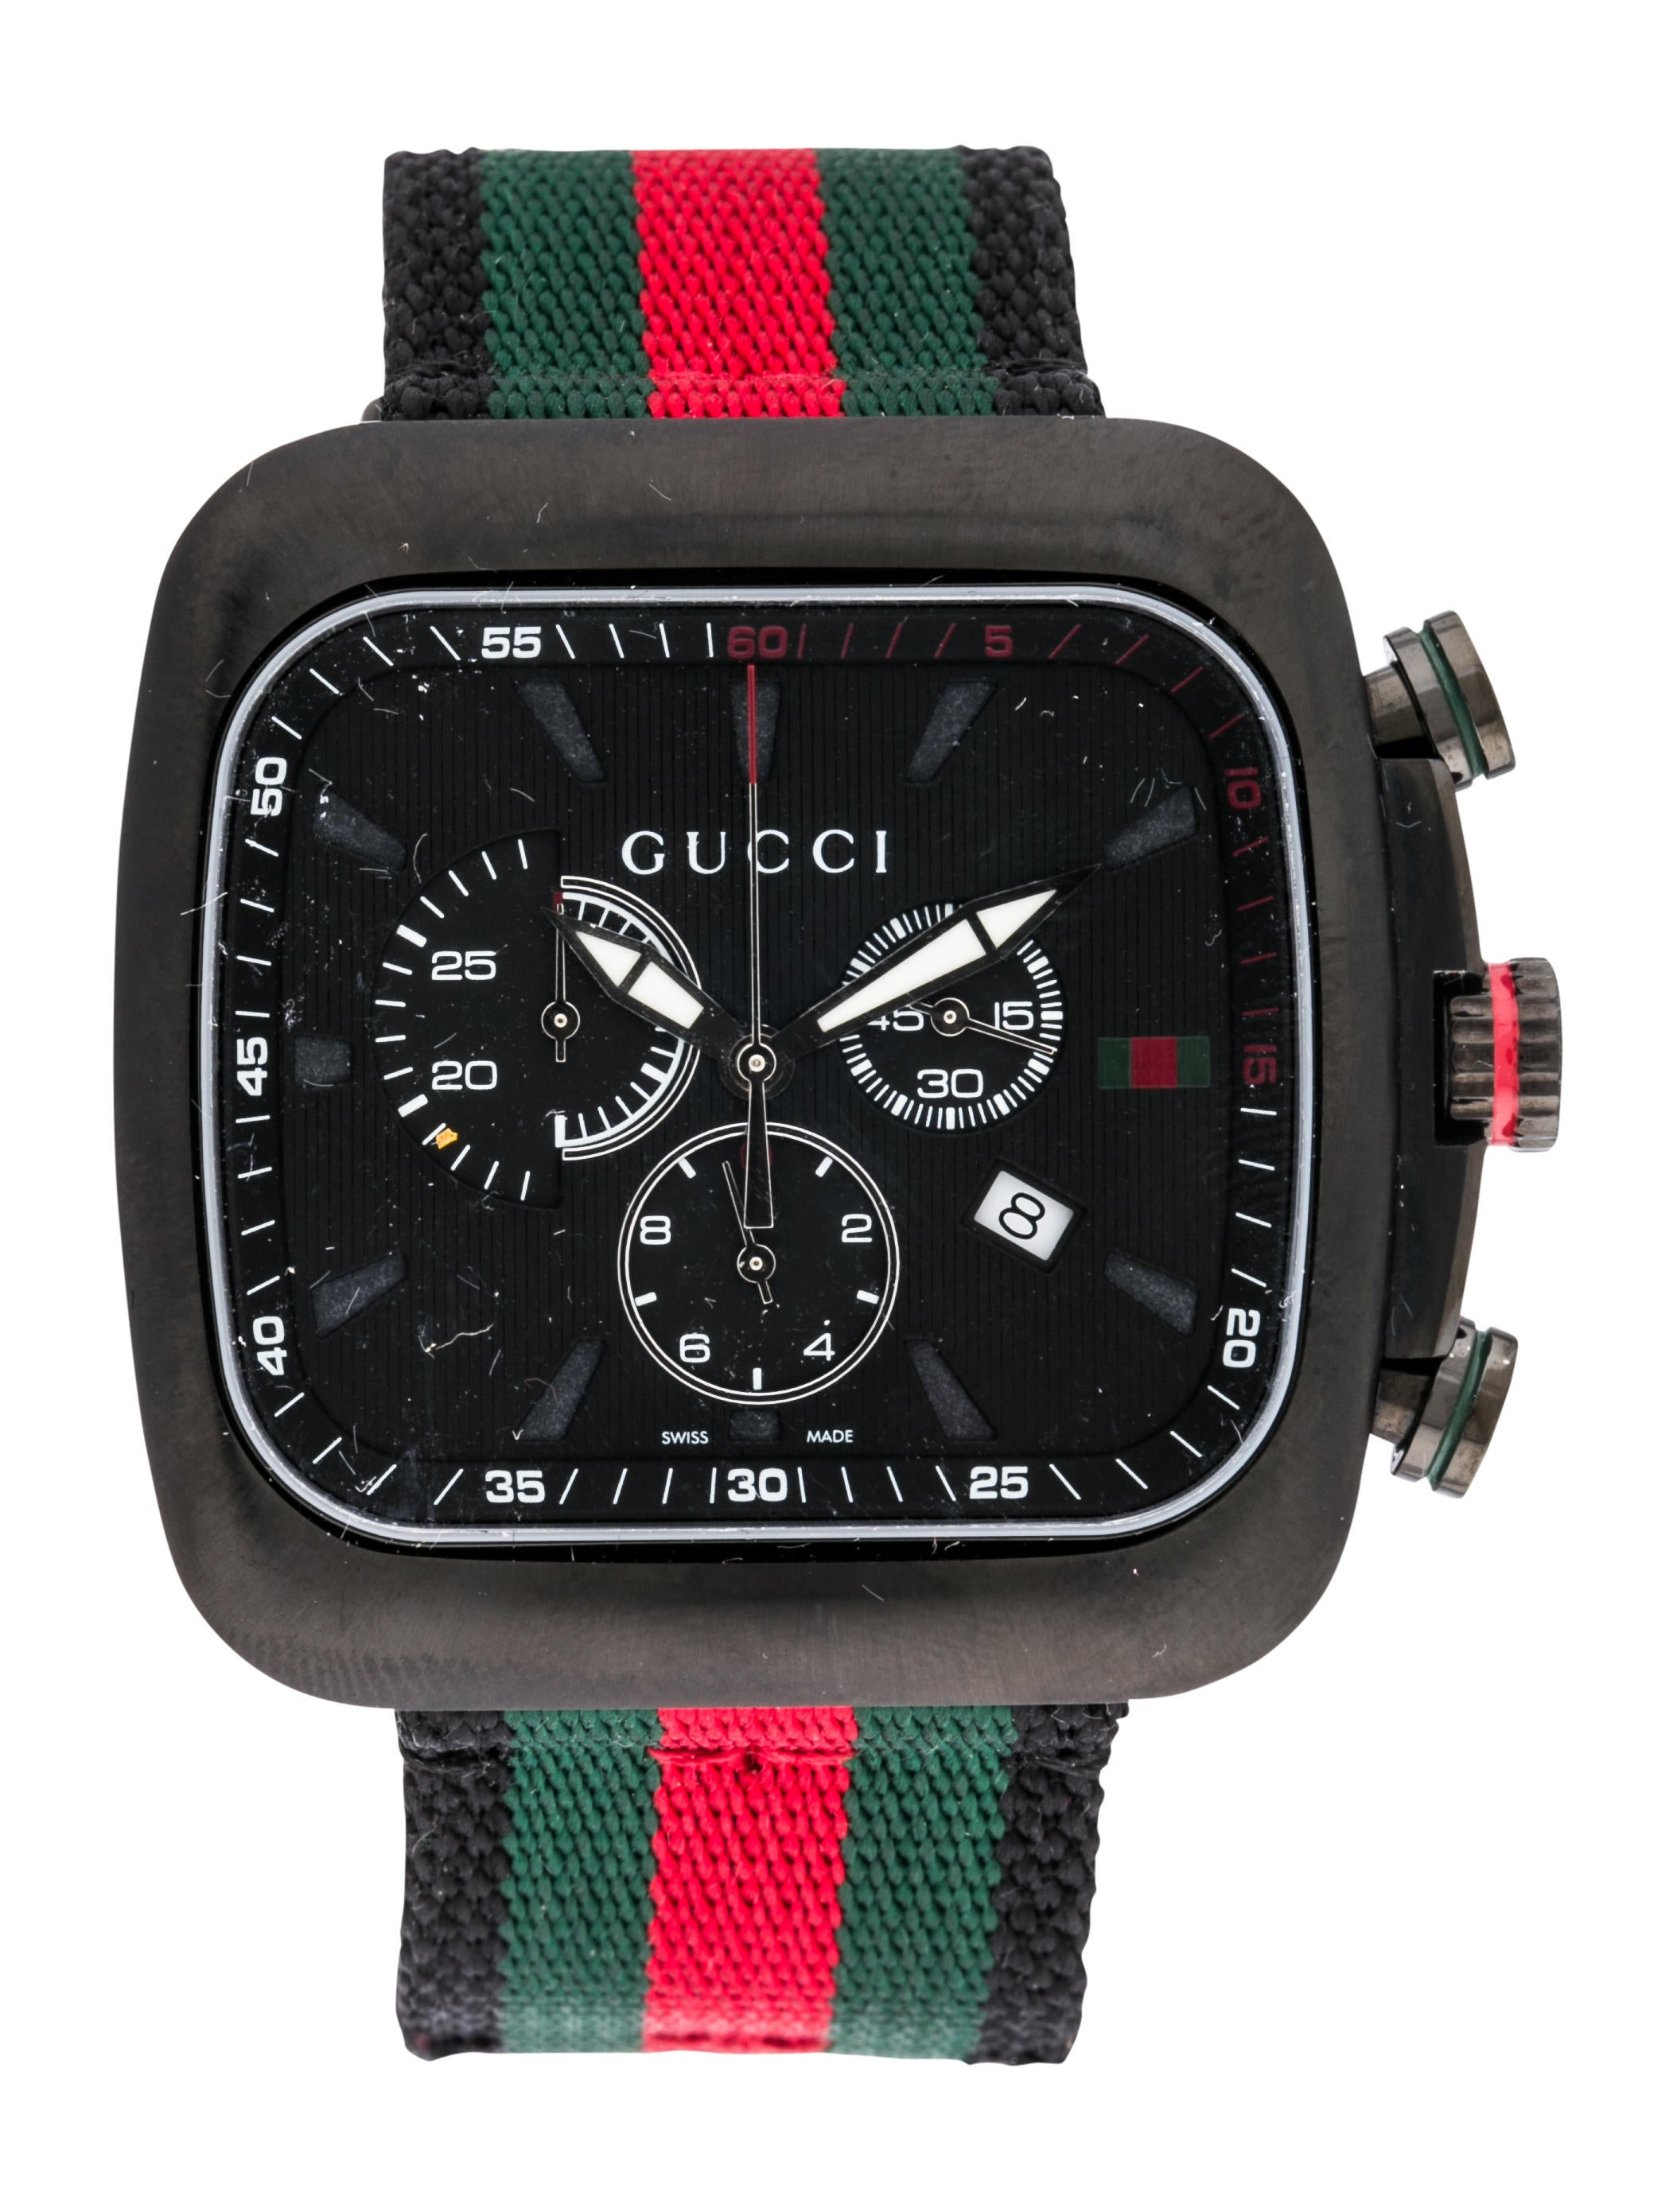 1b29d96aa20 Gucci Coupe Chronograph Watch - Strap - GUC226707